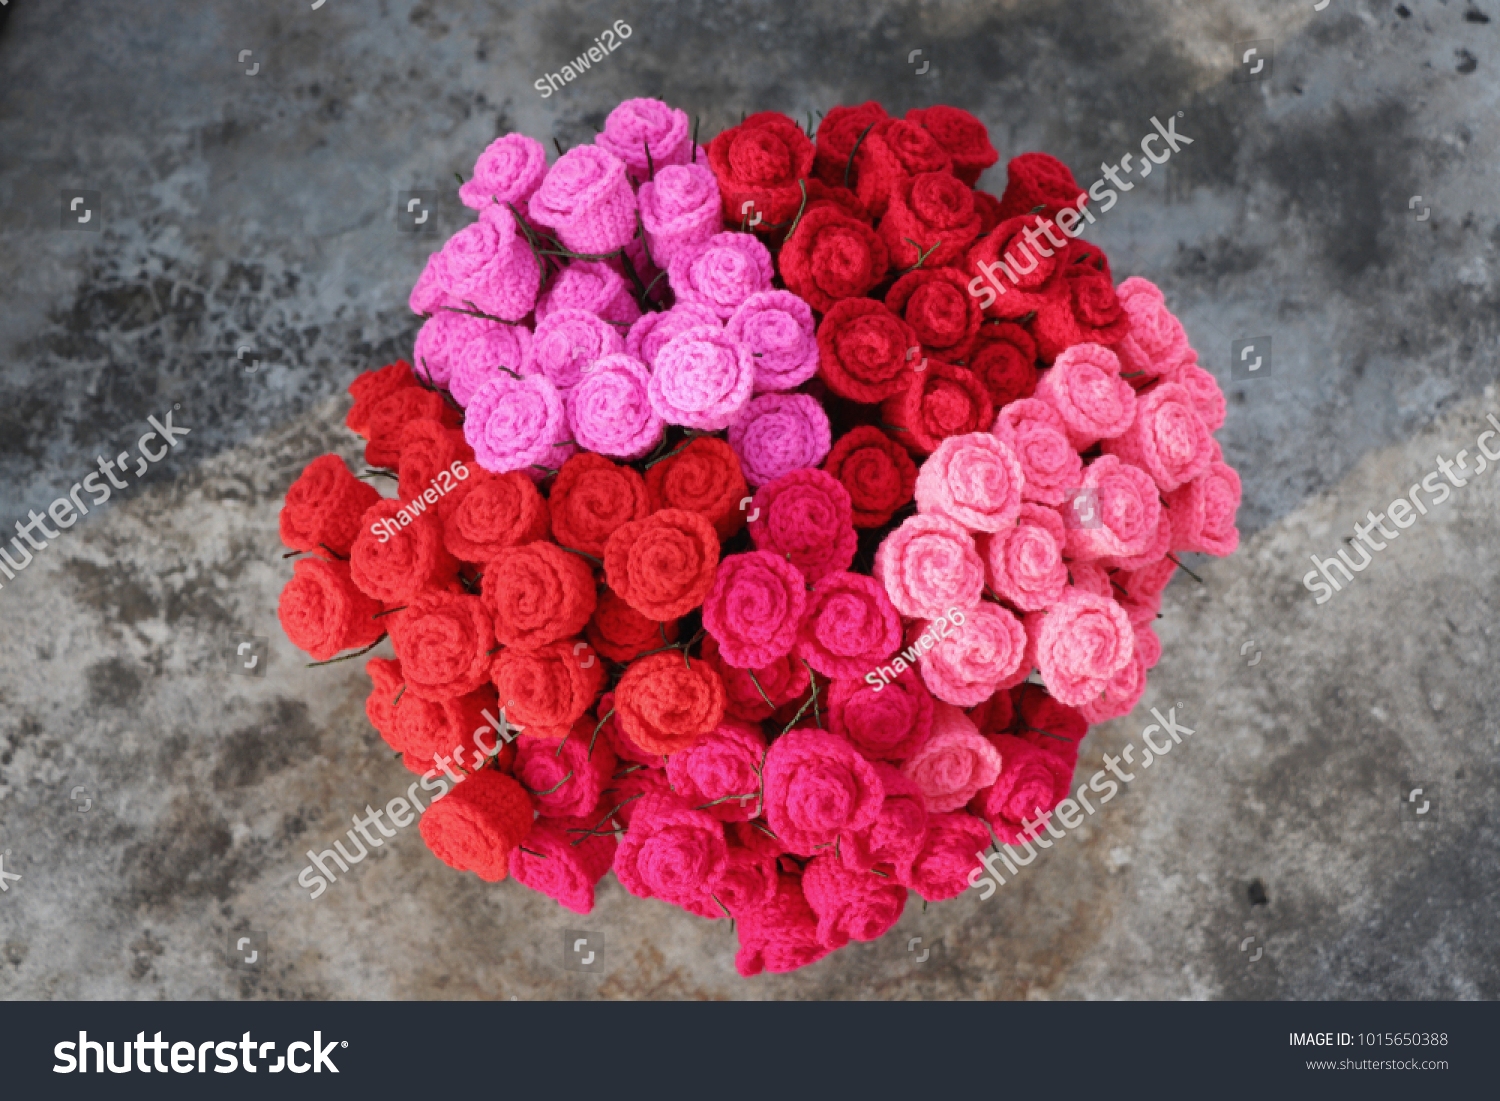 Bouquet colorful crochet roses on dirty stock photo edit now bouquet of colorful crochet roses on dirty cement floor handmade crochet flowers valentines day izmirmasajfo